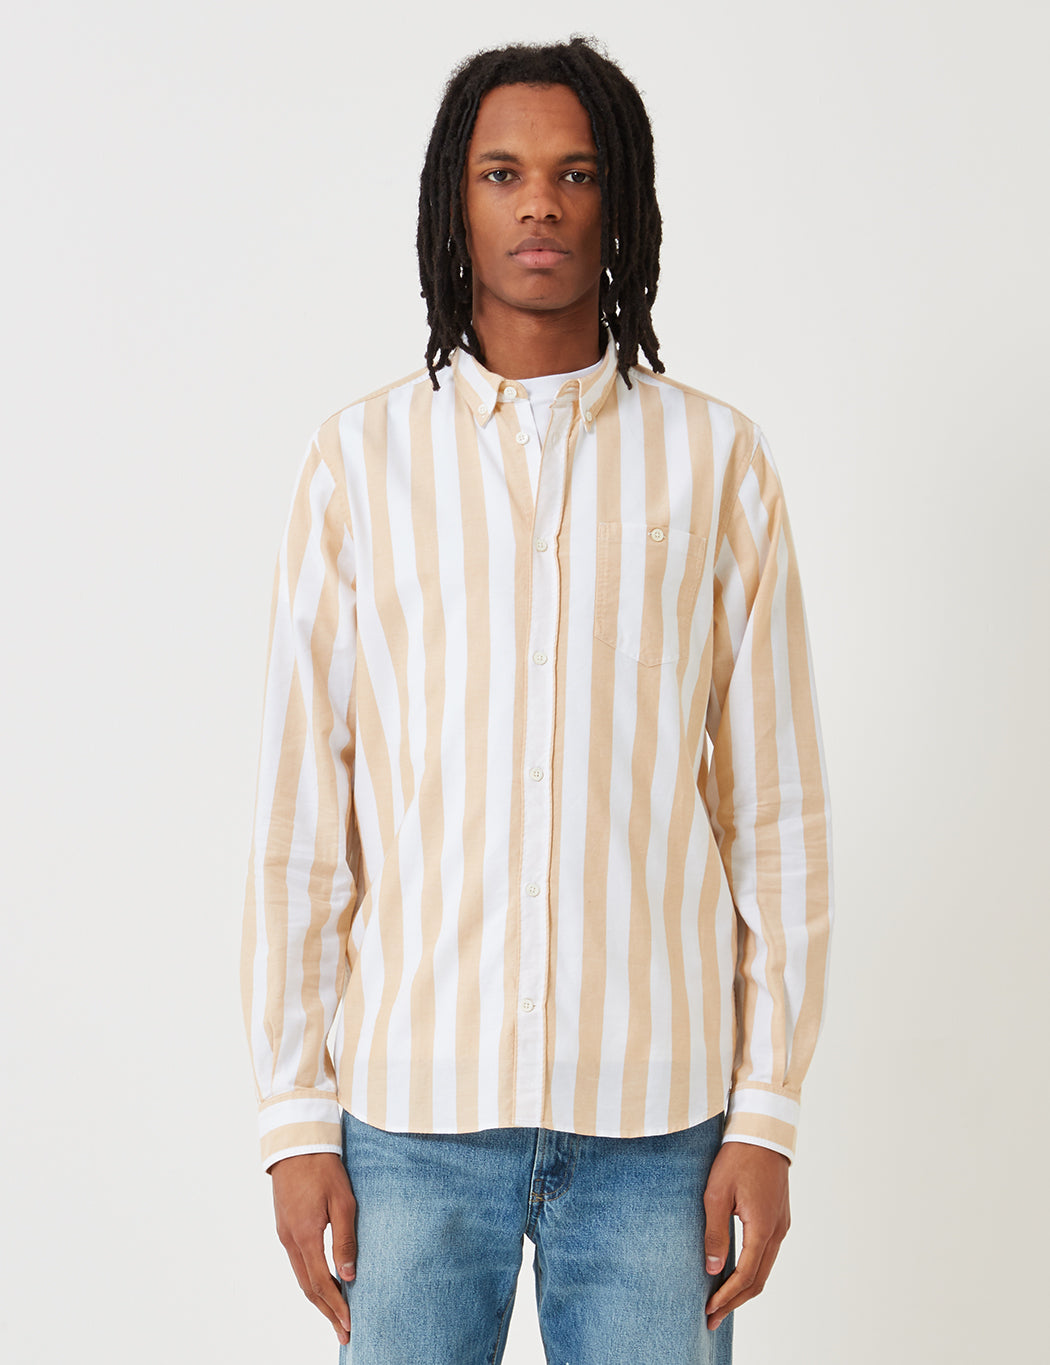 Norse Projects Anton Wide Stripe Oxford Shirt - Yellow   URBAN EXCESS.